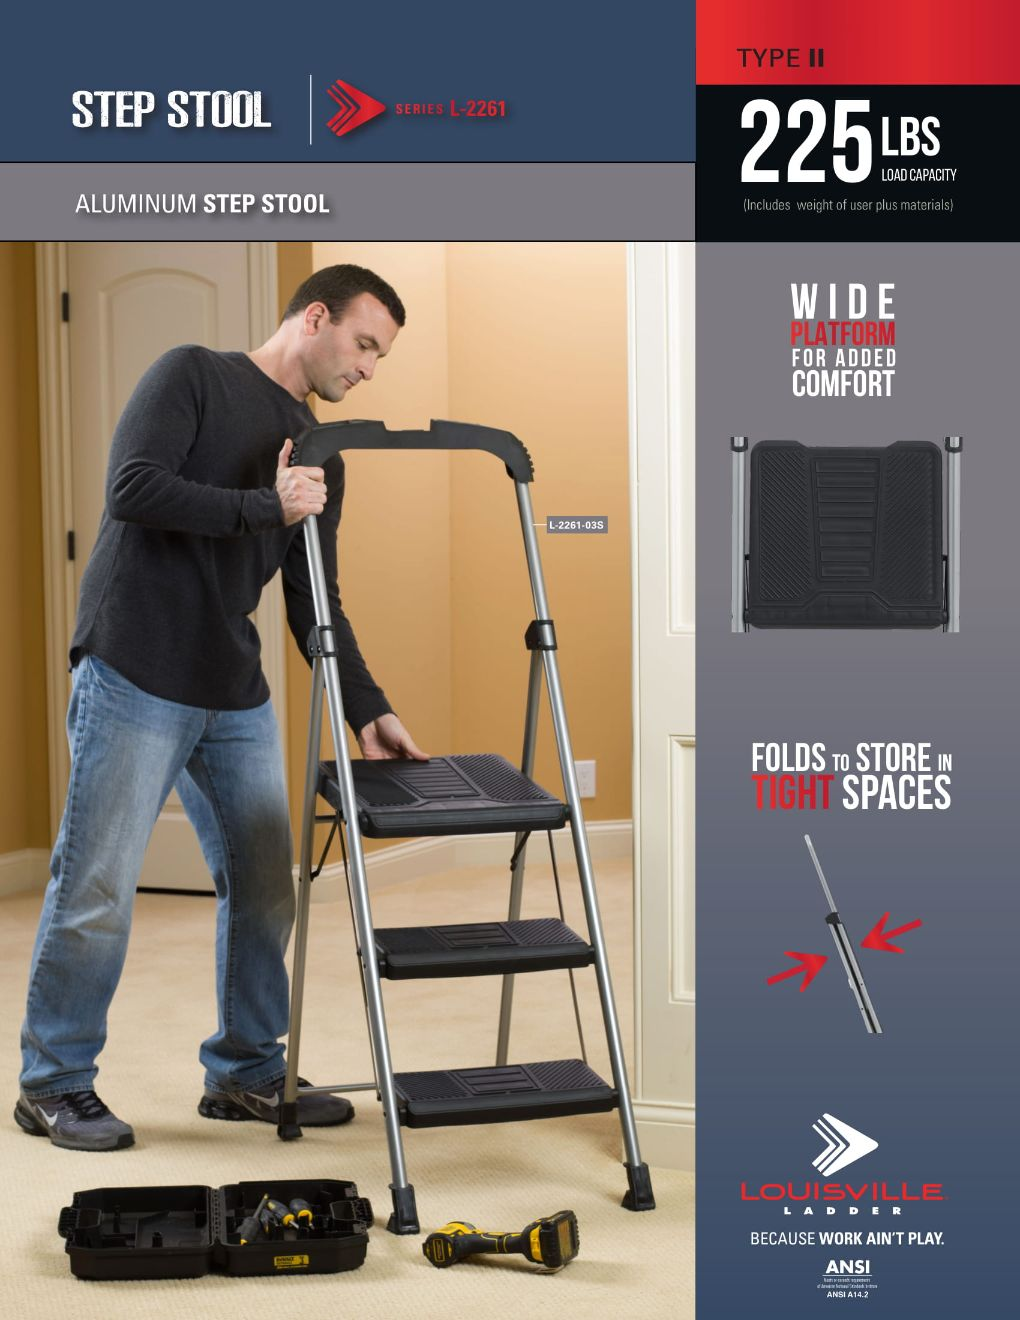 L-2261 Step Stool Ladder Flyer and Spec Sheet Marketing Material Image